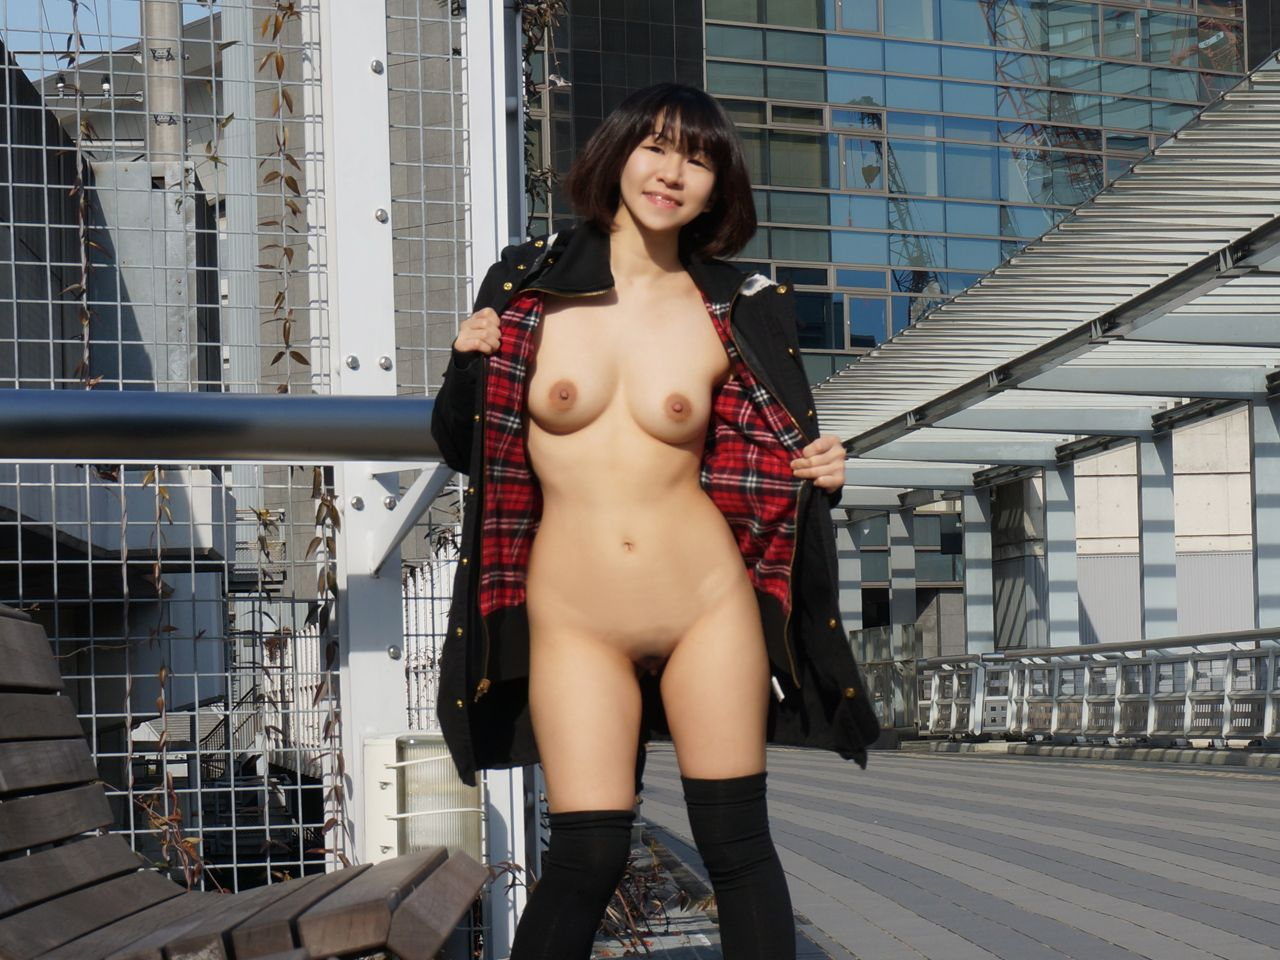 sikisme-fotolari-japan-public-nudity-puts-lollipop